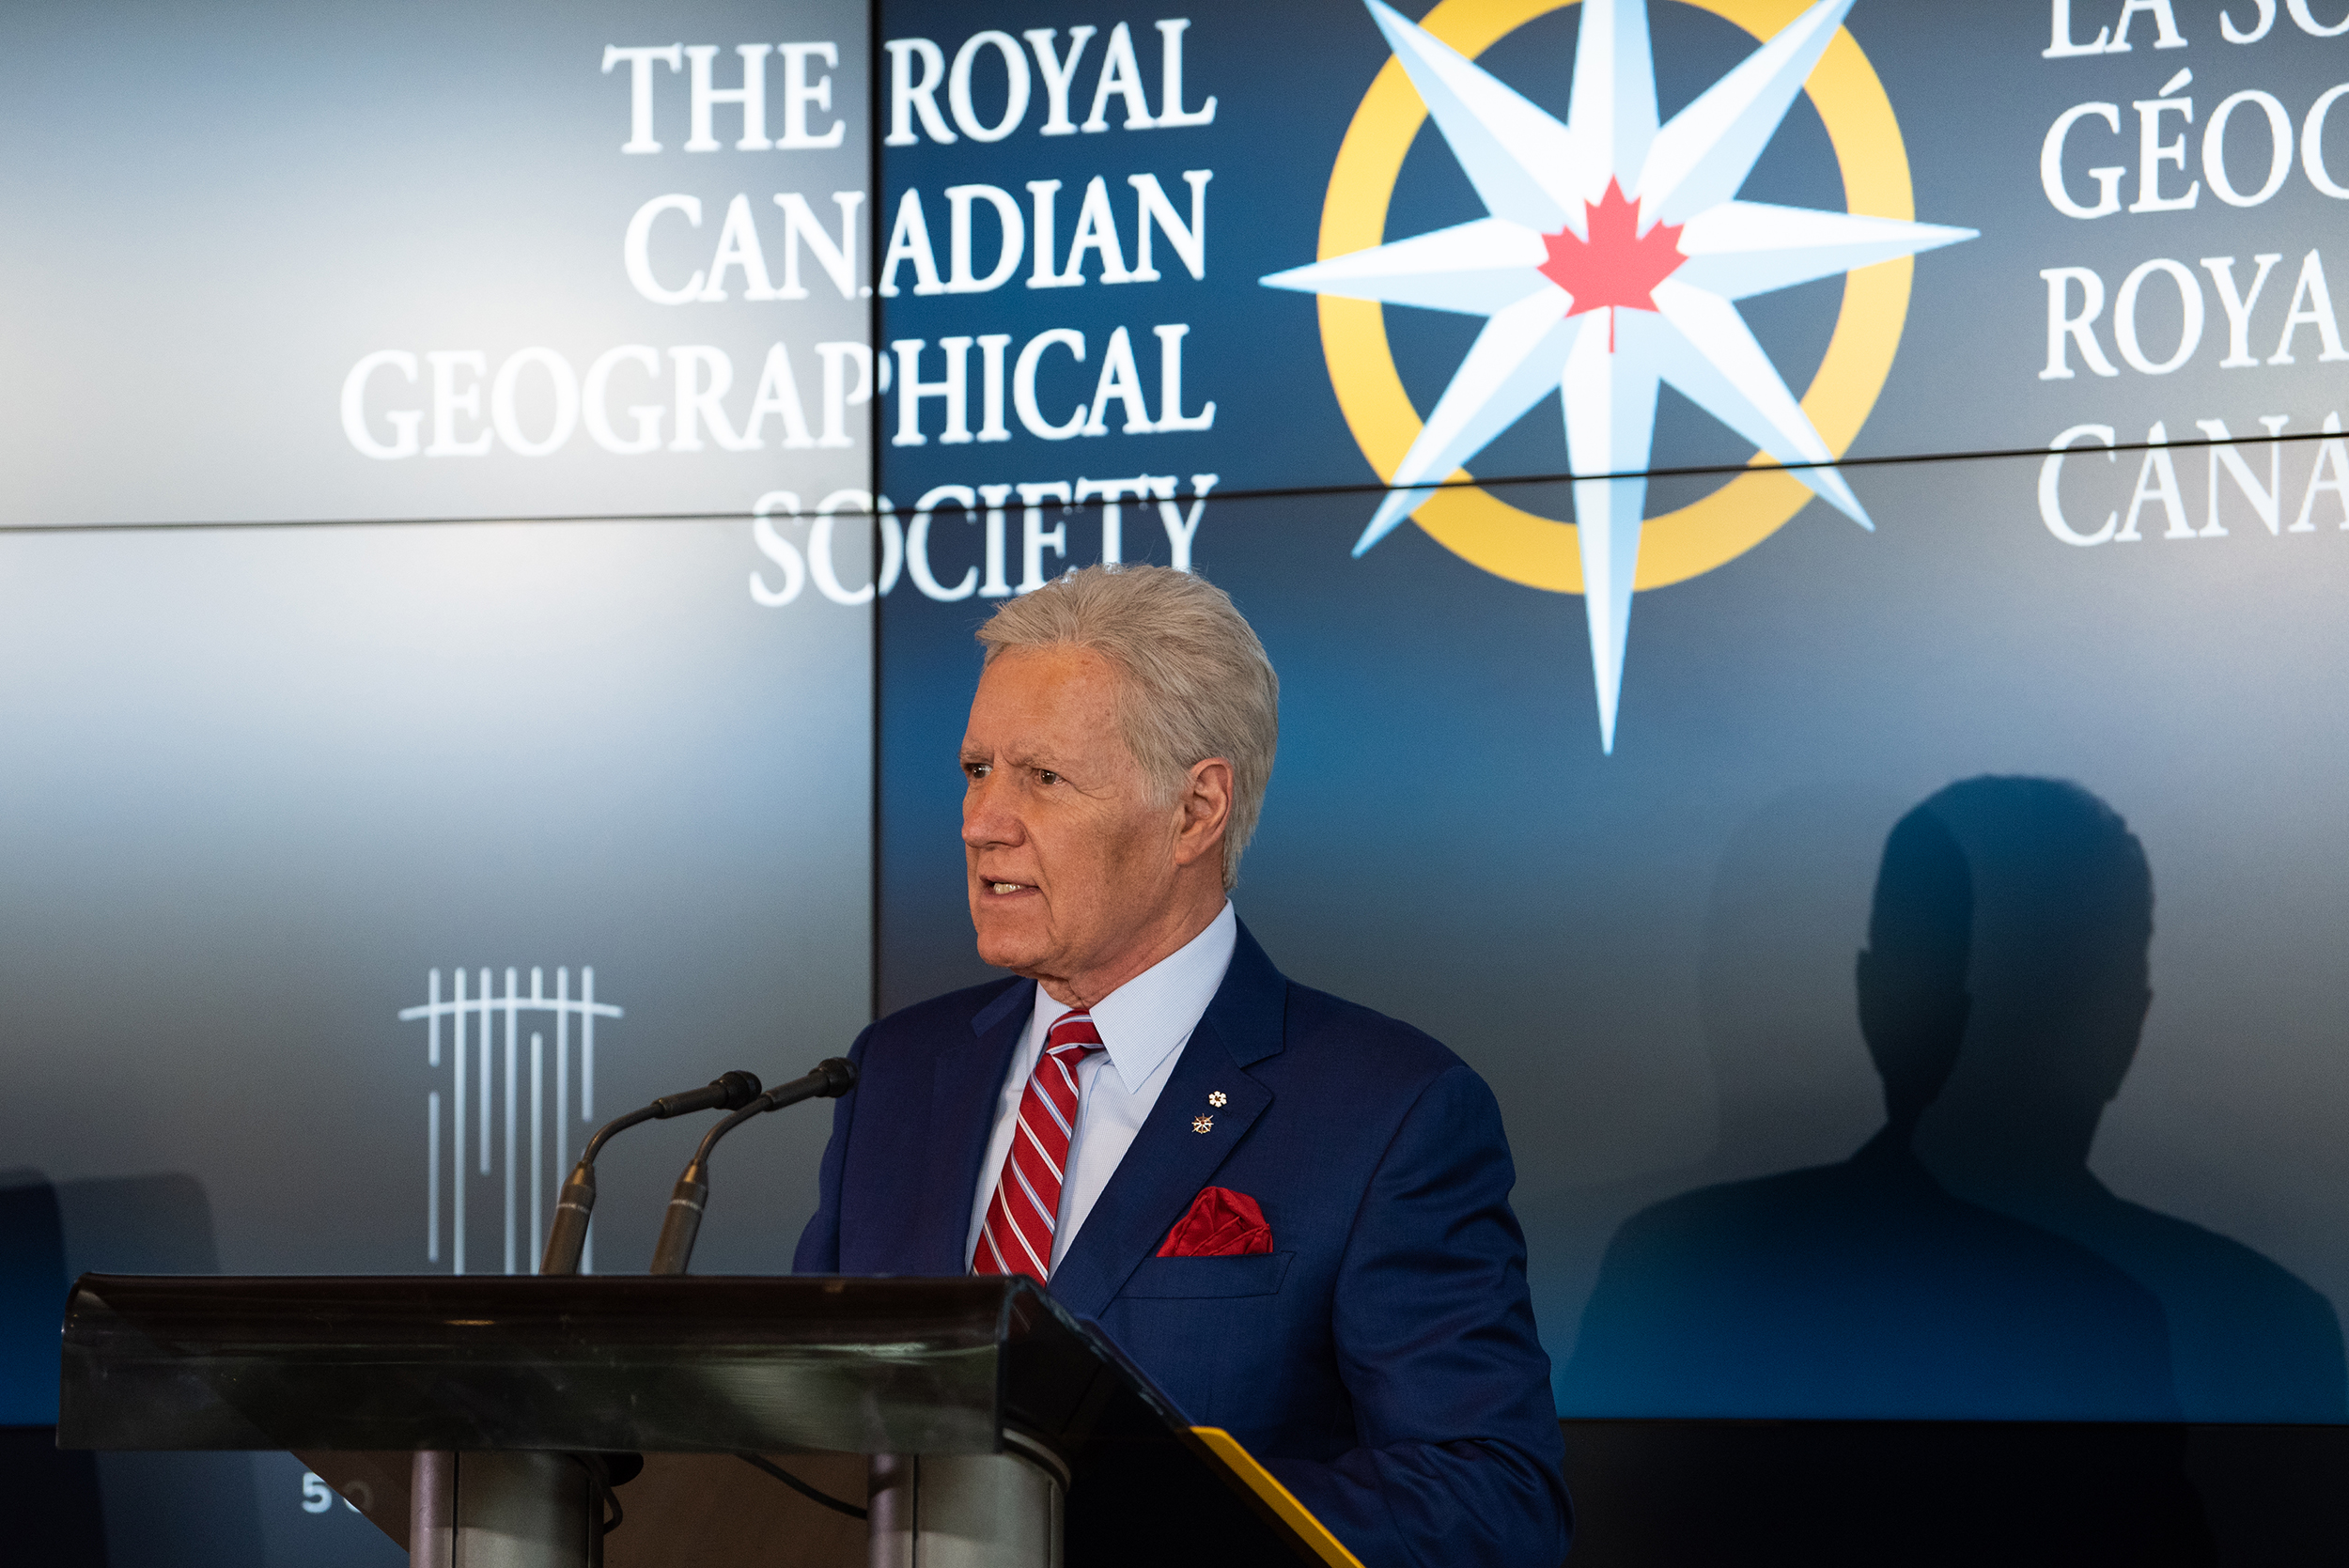 Alex Trebek stands at a podium with the Royal Canadian Geographical Society logo on the screen behind him